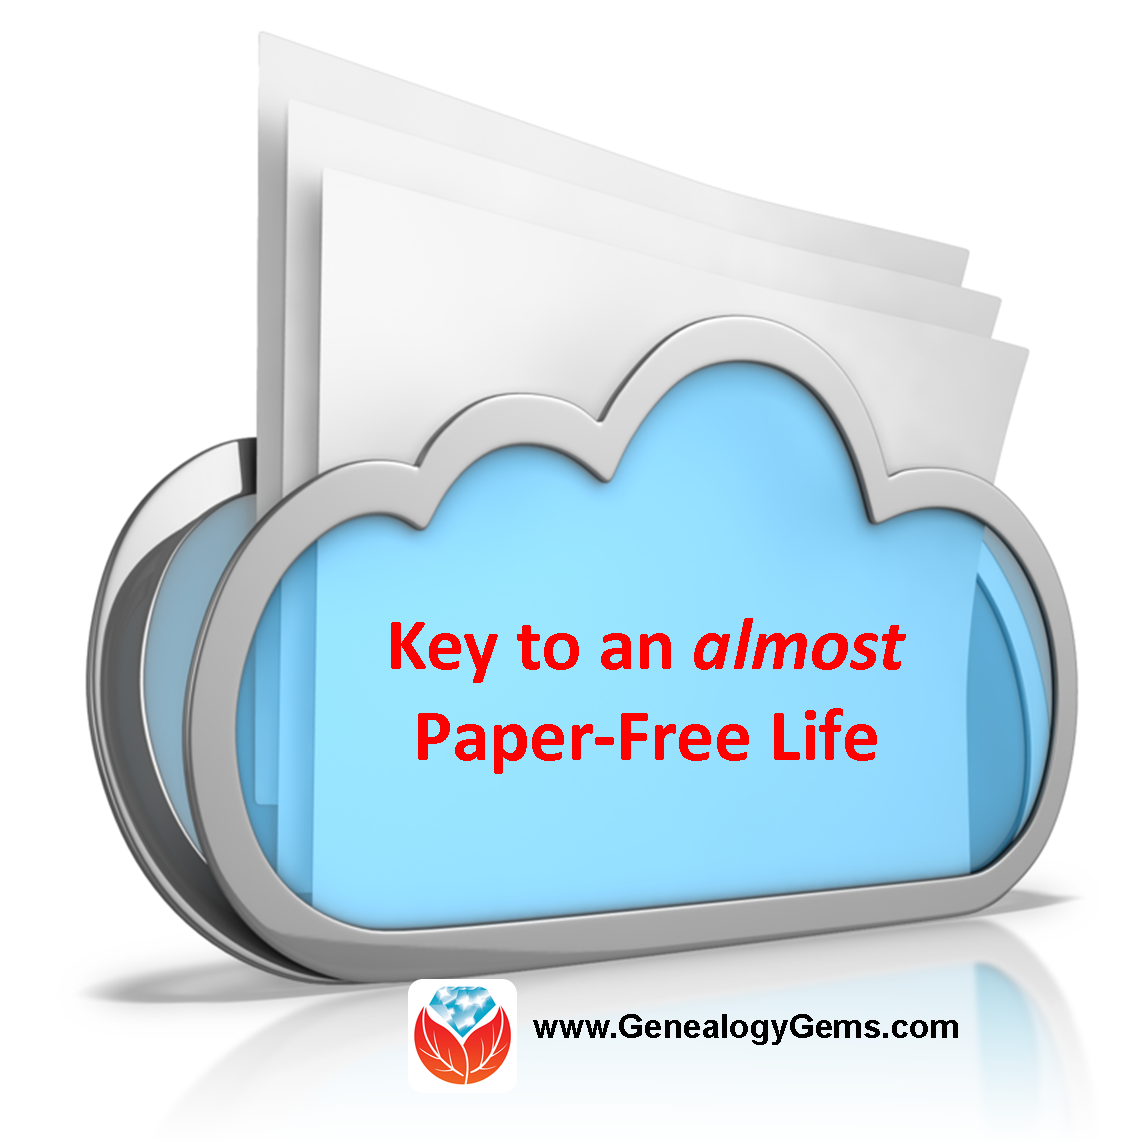 How Cloud Backup Helped One Genealogy Gem Get Closer to Living a Paper-Free Genealogy Life